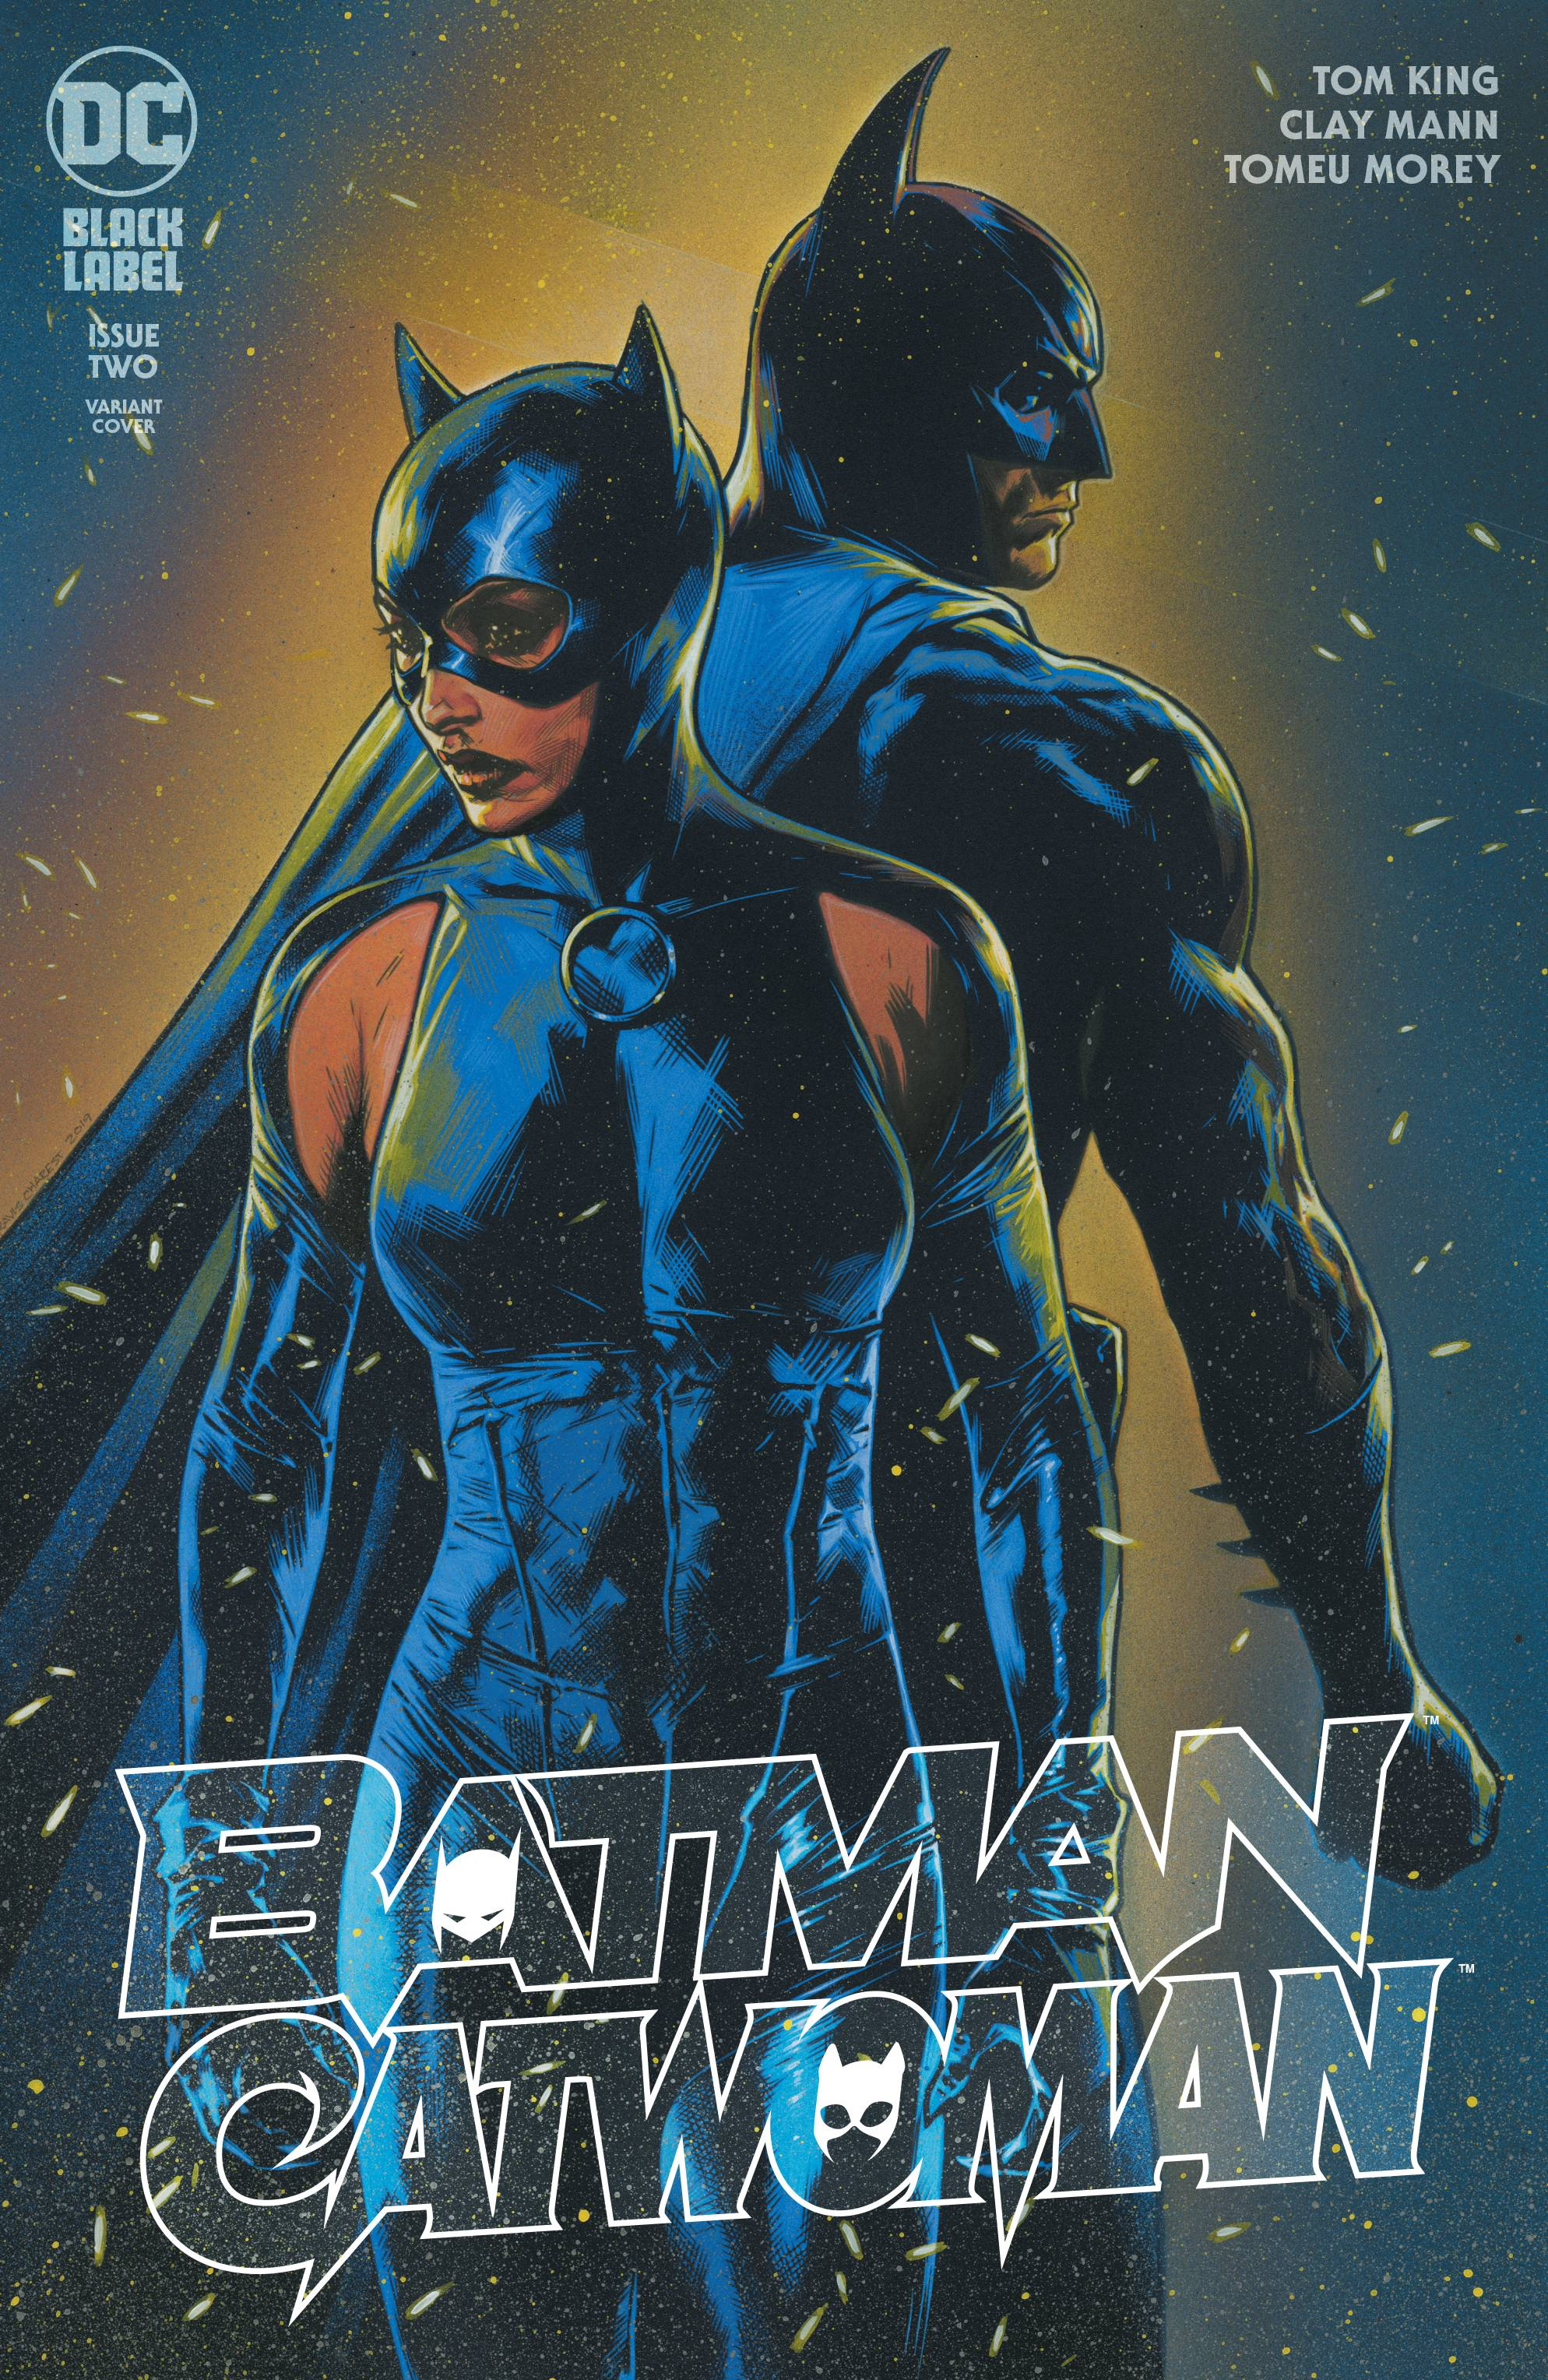 BATMAN CATWOMAN #2 TRAVIS CHAREST VAR ED